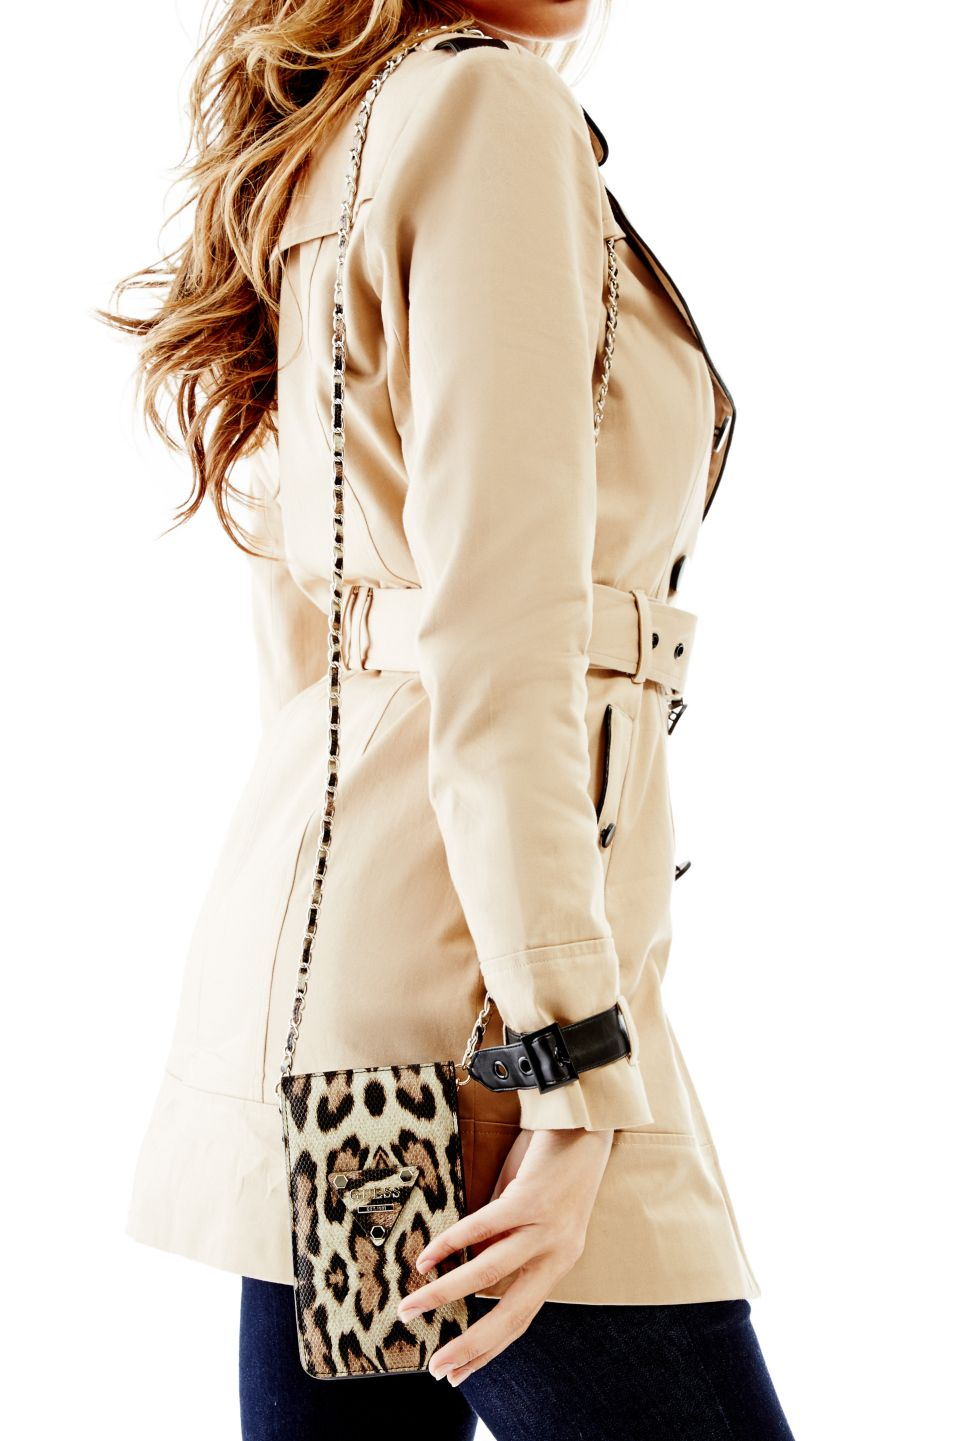 For the Muse: Chit Chat Leopard-Print Cross-Body | GUESS.com #GUESSHoliday